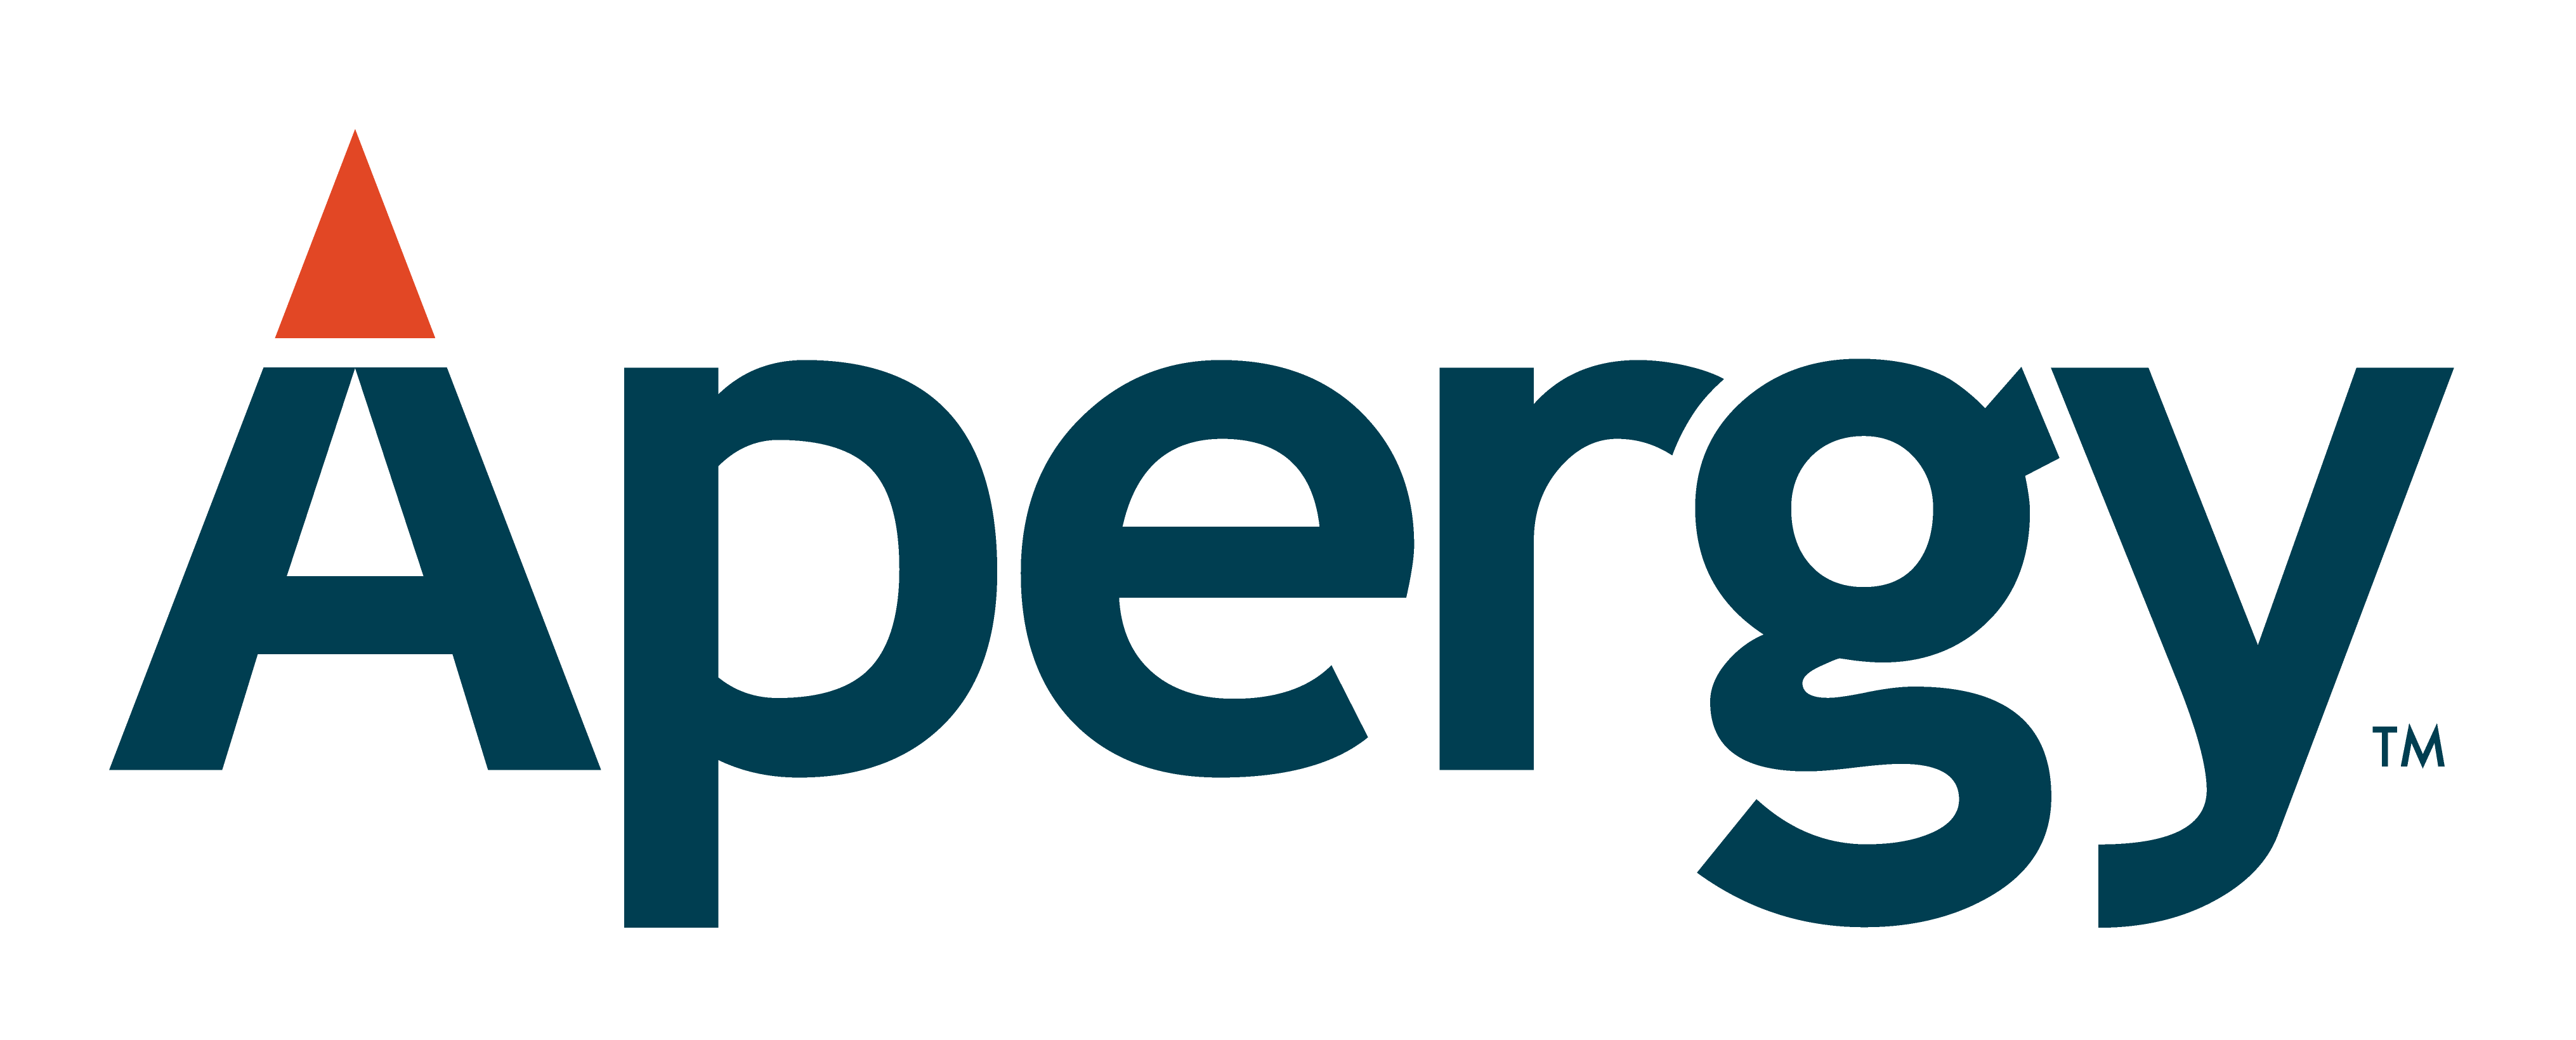 Apergy Reports Fourth Quarter and Full Year 2018 Results